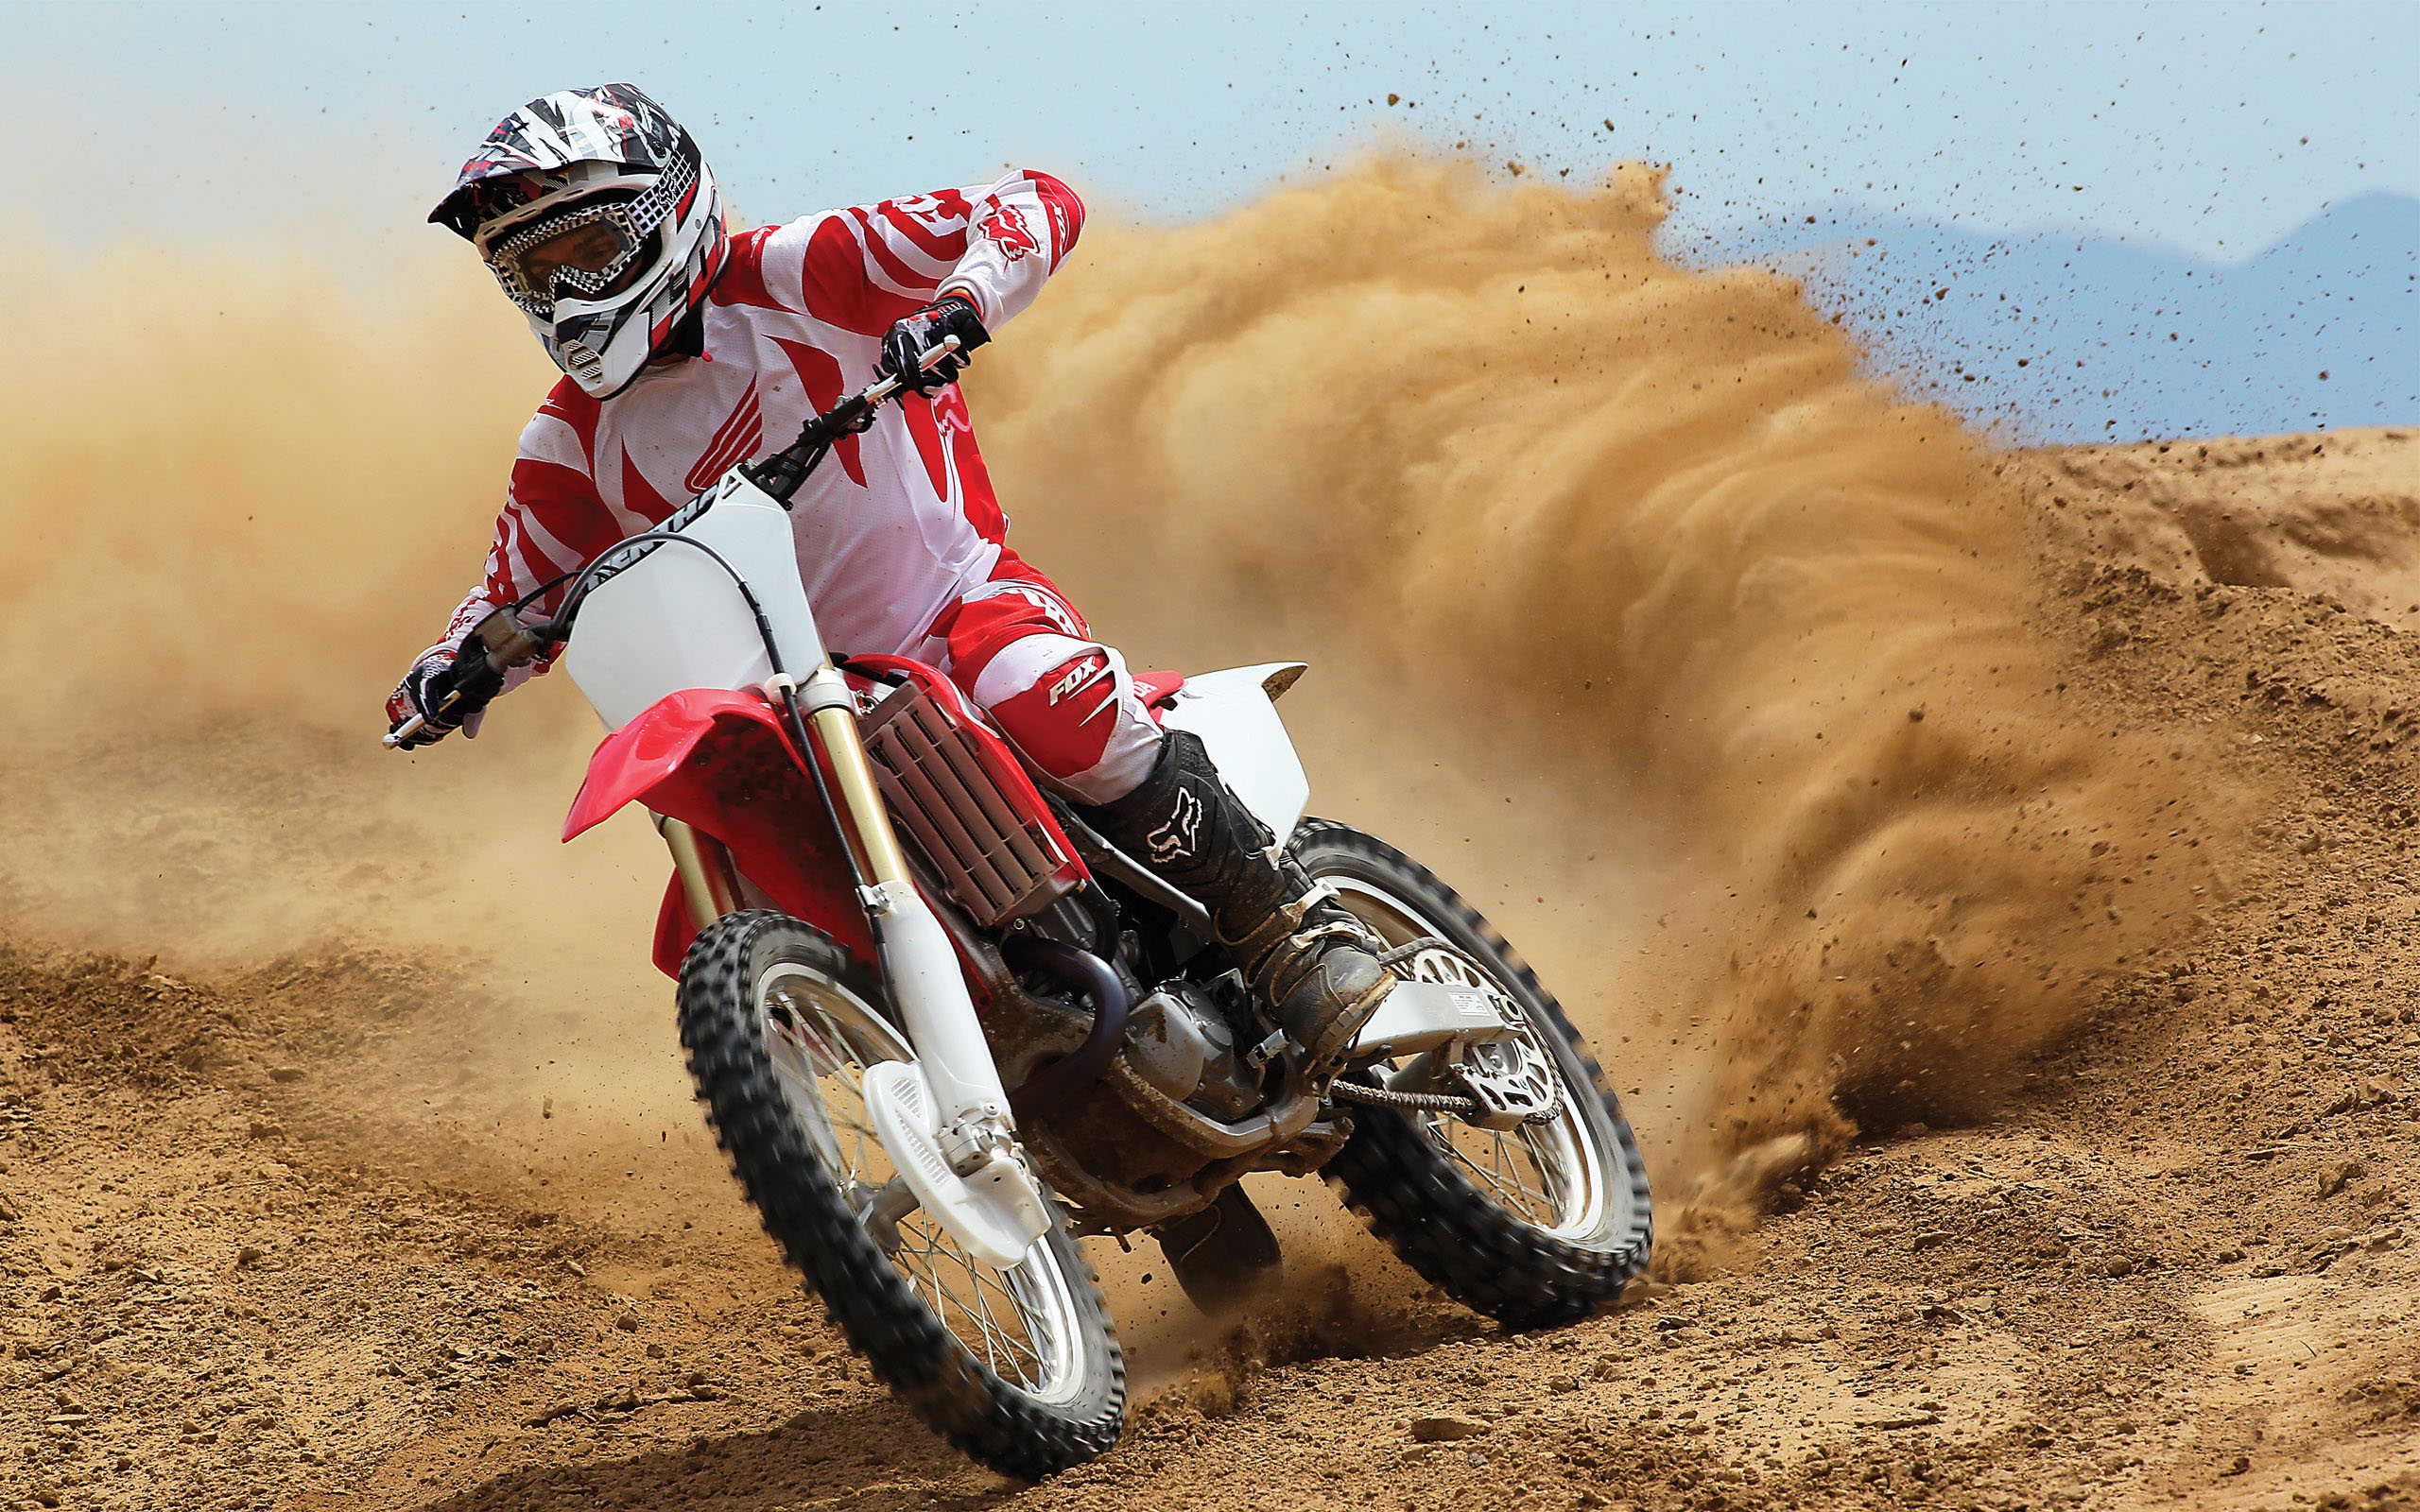 pc wallpaper Honda CRF450R 2560x1600